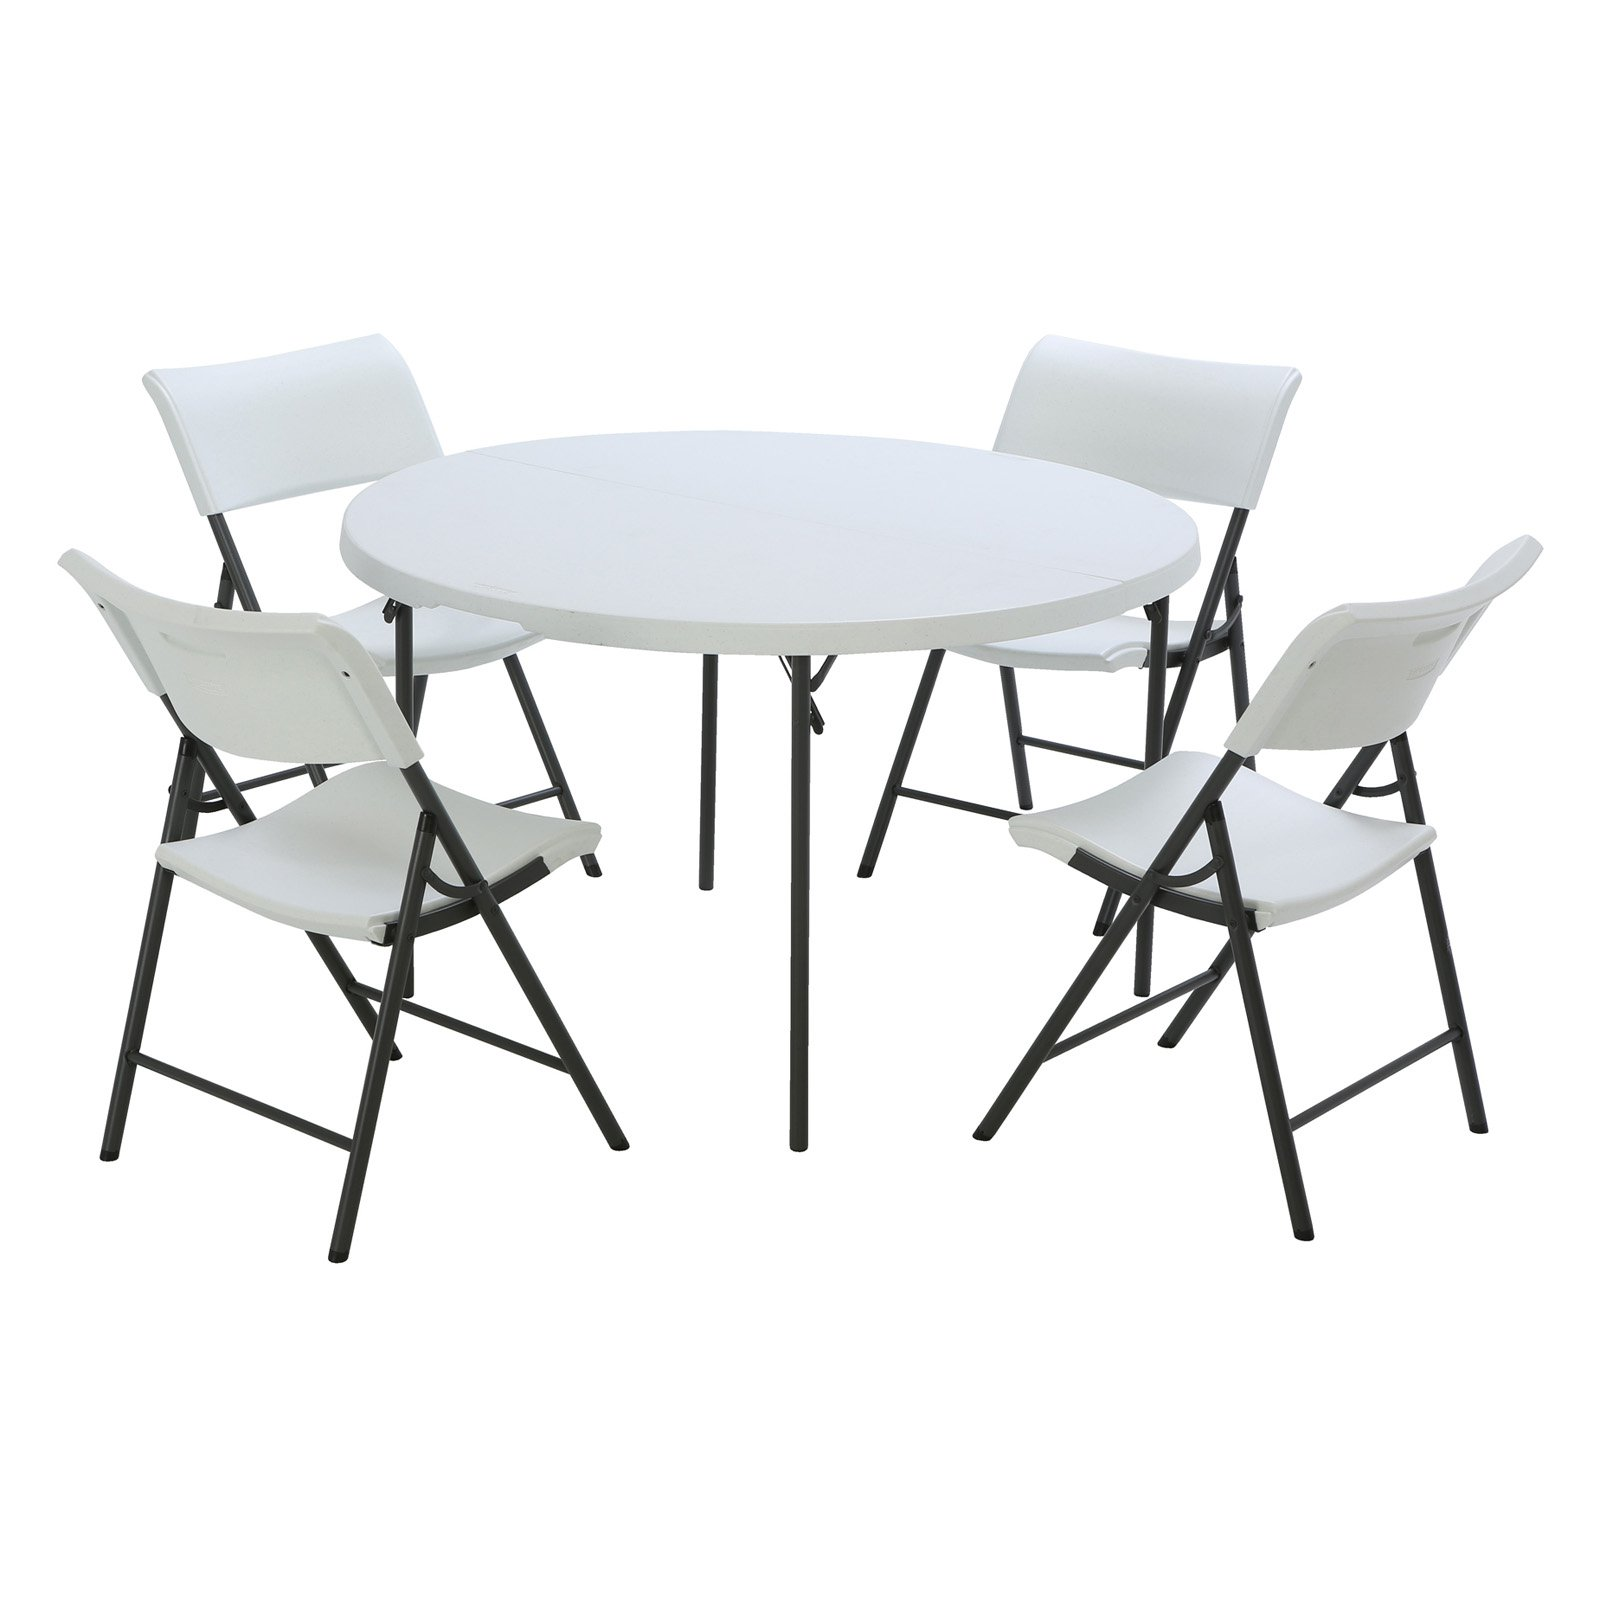 Round Fold In Half Table And Chair Combo   Walmart.com